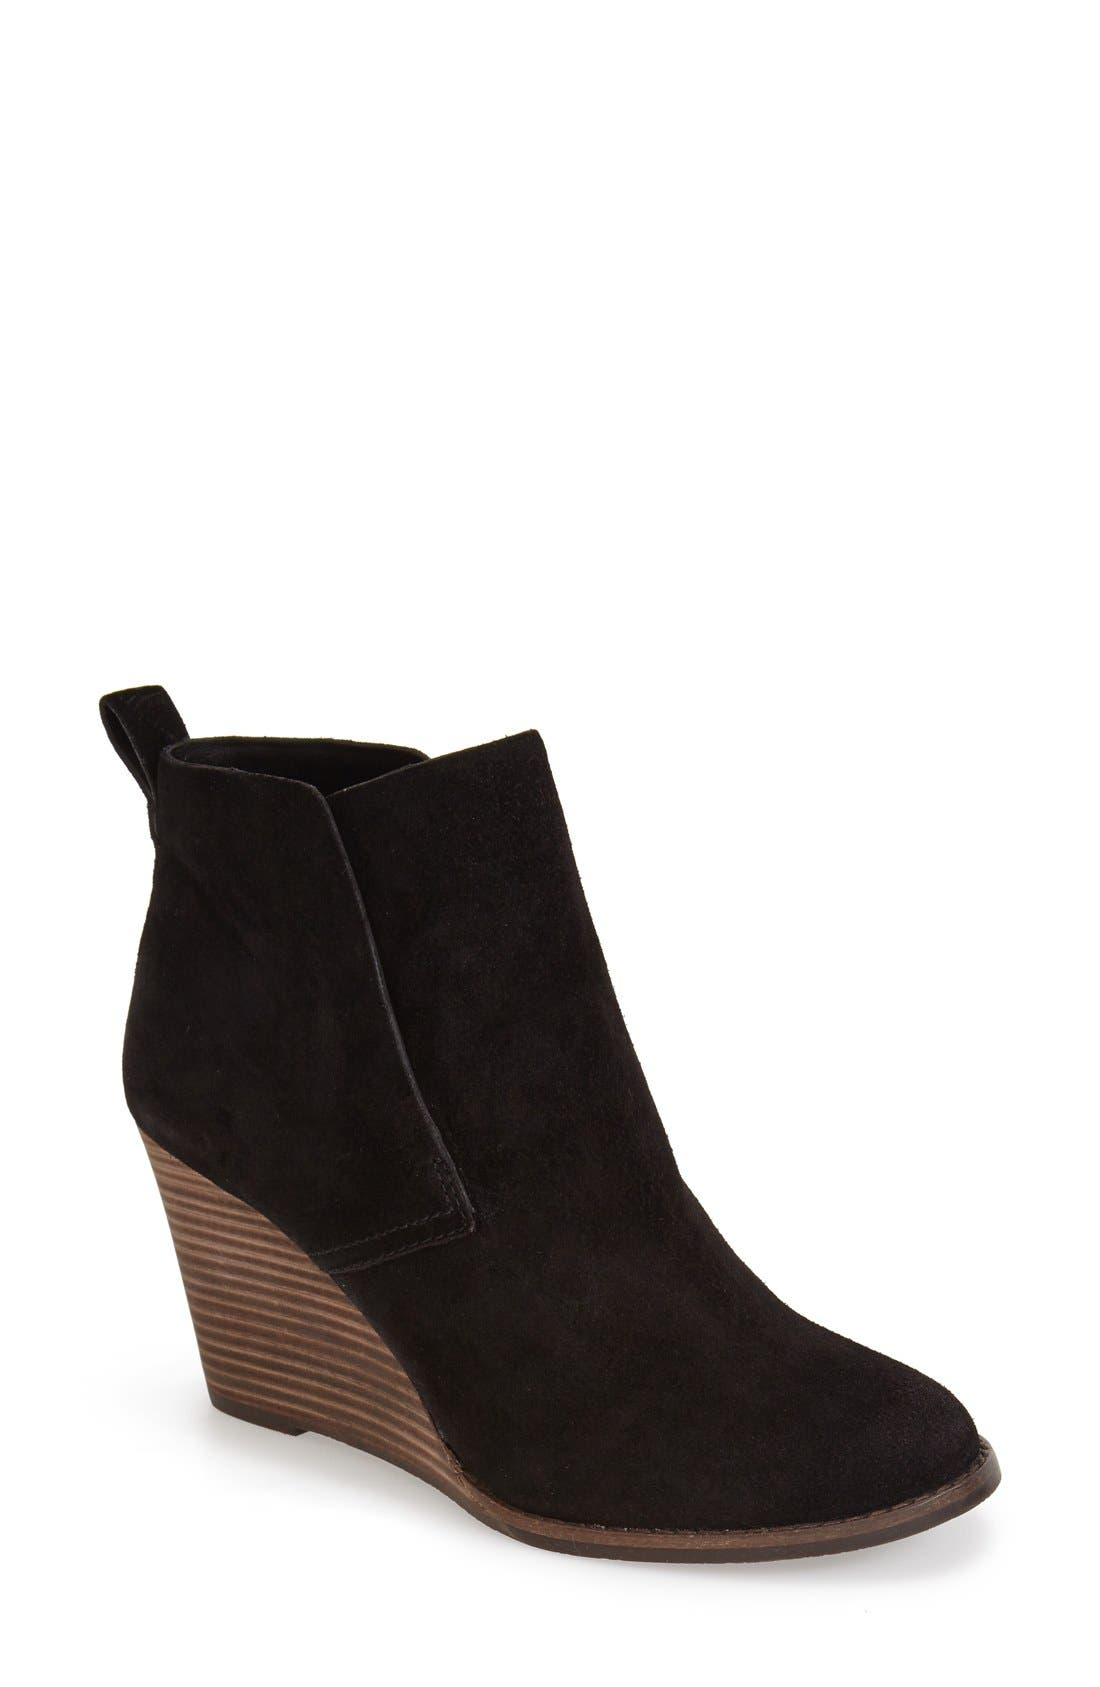 Image of Lucky Brand Yoniana Suede Wedge Bootie